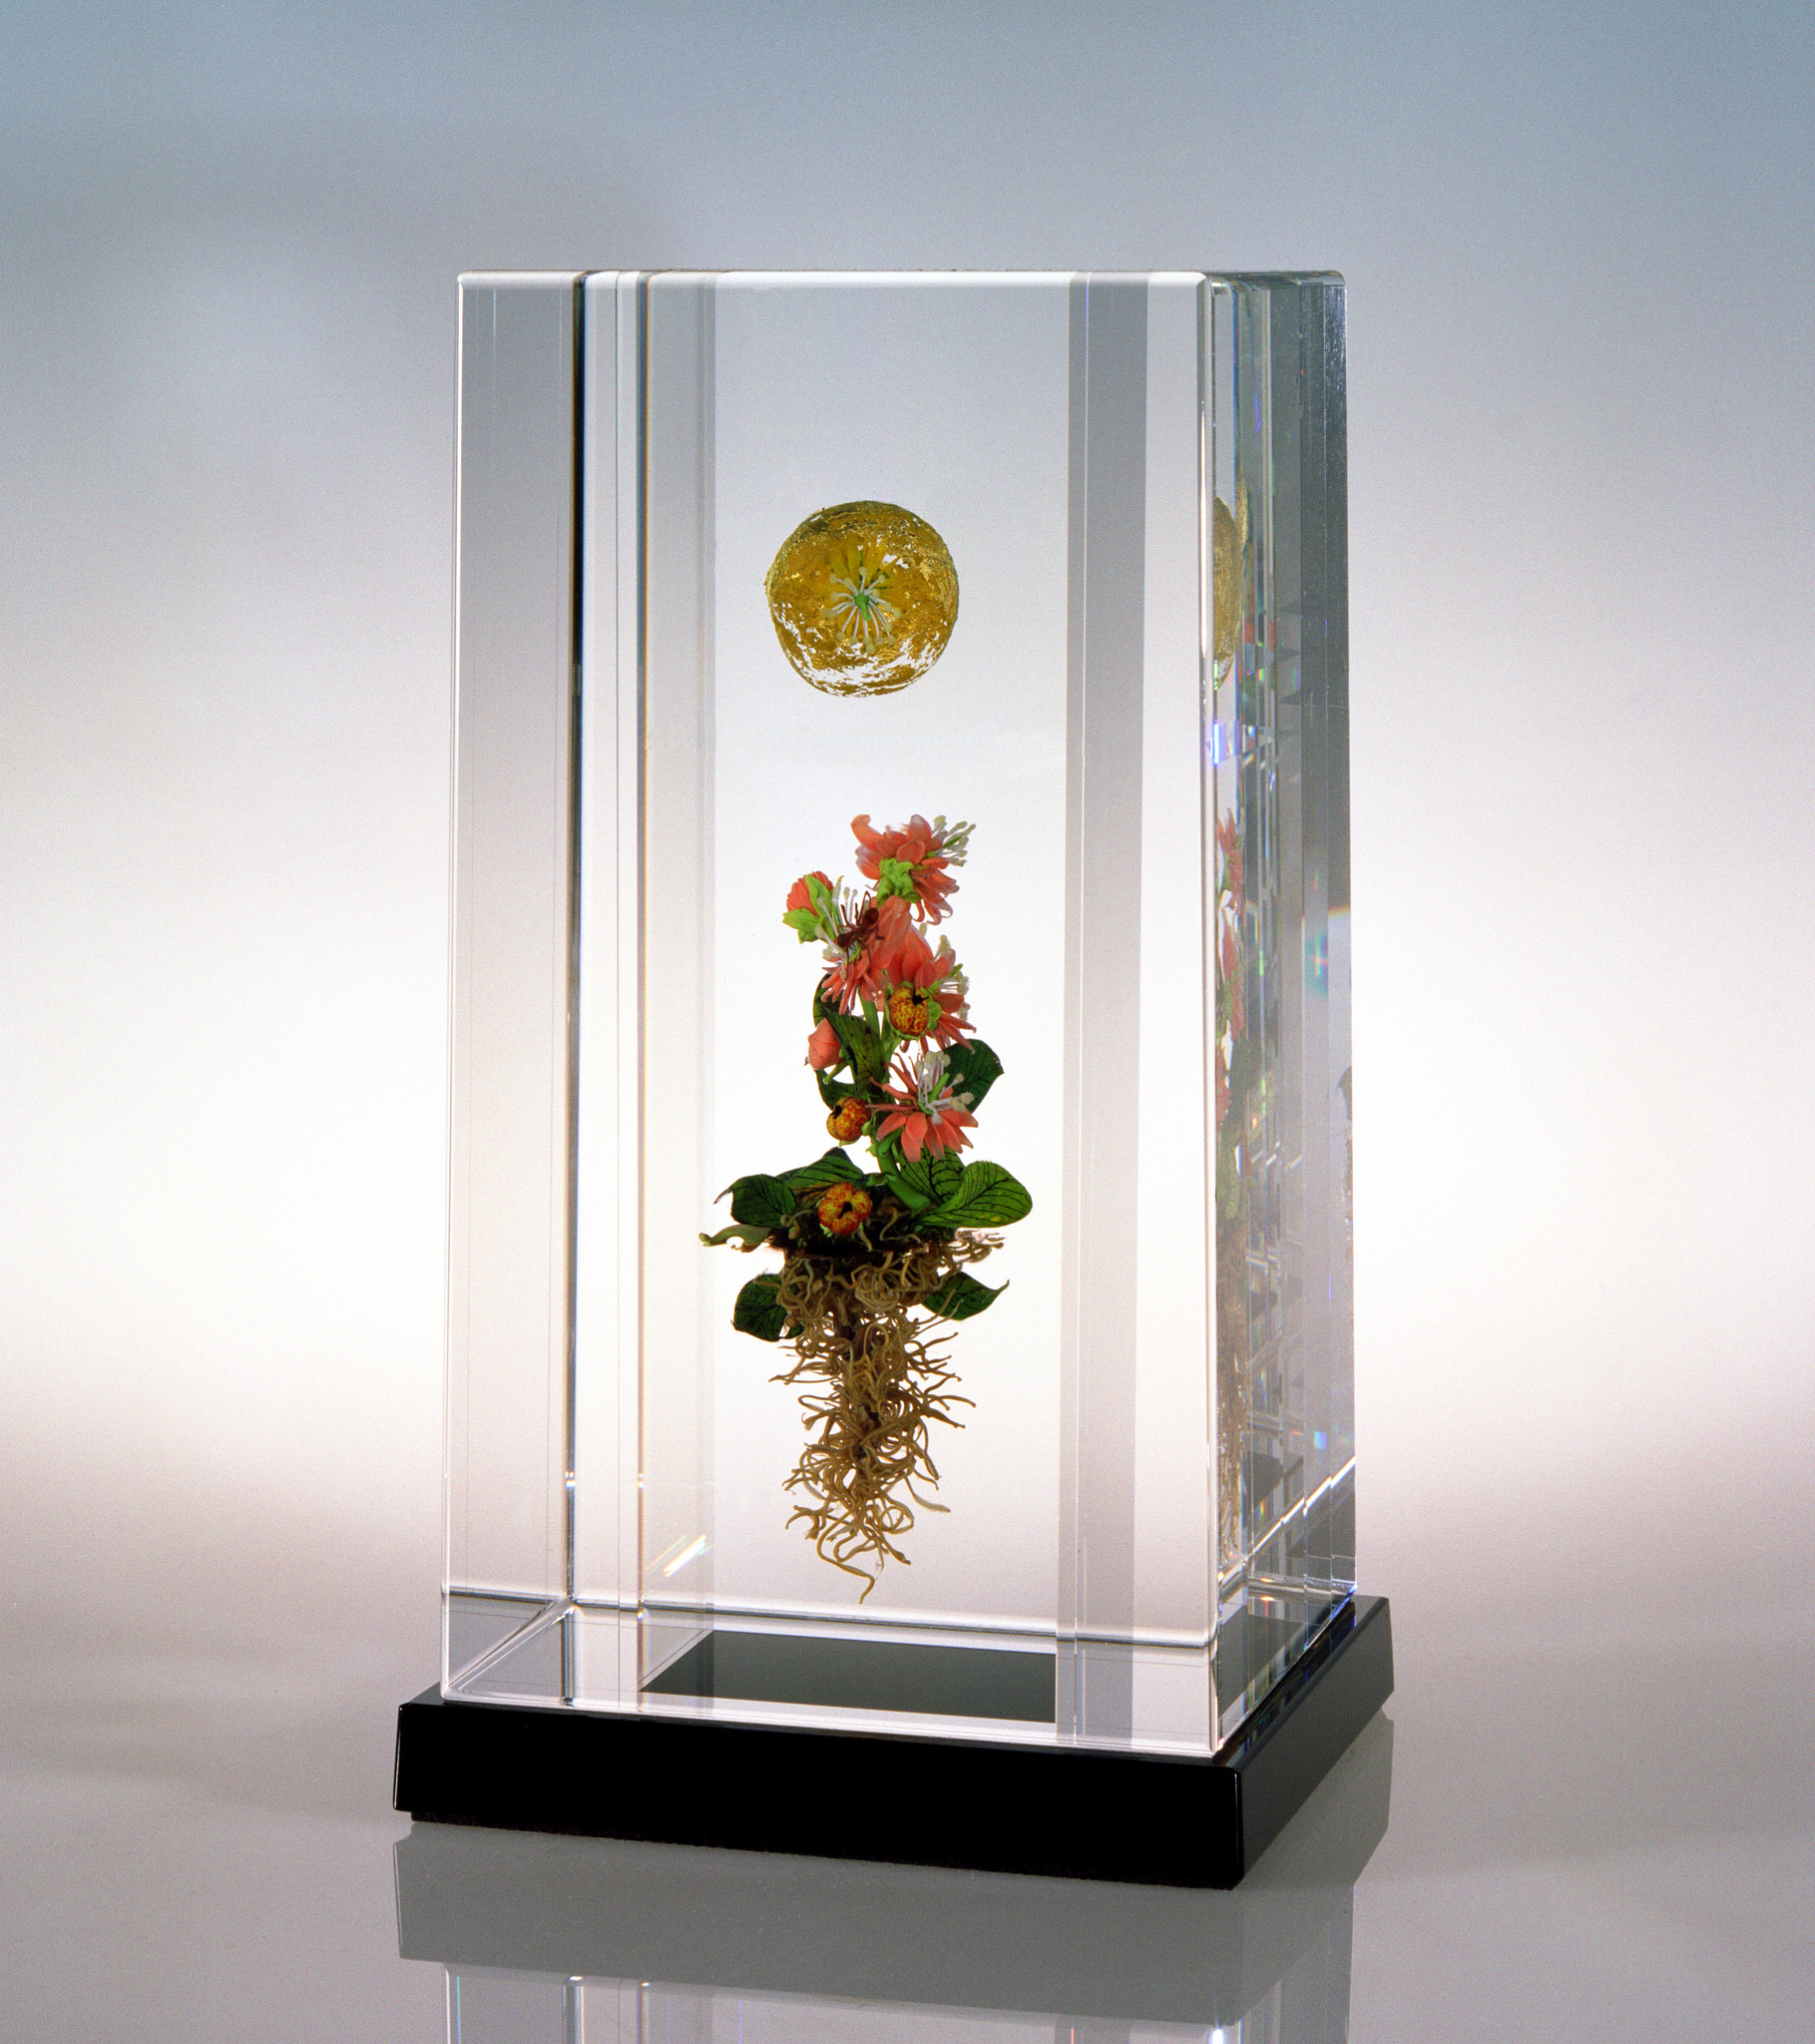 2004; Golden Orb Column, H. 7 5/8 inches x W. 3 7/8 inches x D. 4.0 inches